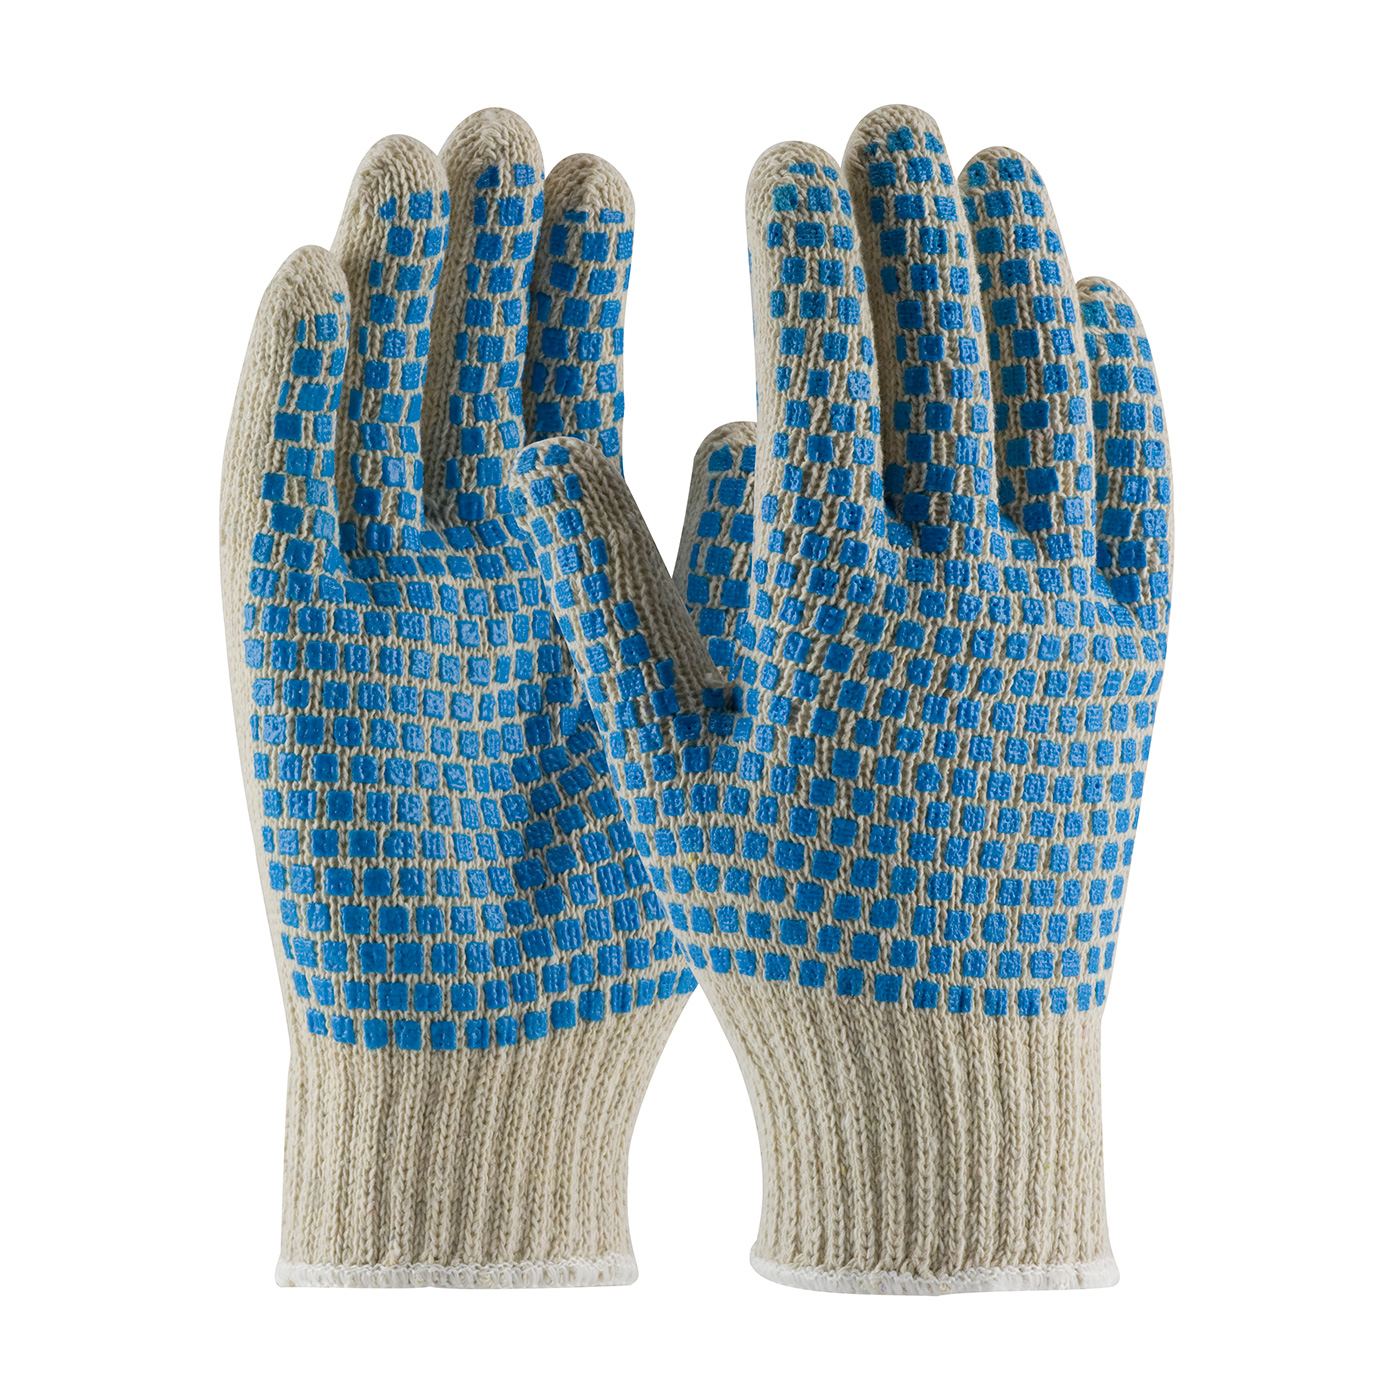 PIP® Seamless Knit Cotton / Polyester Glove with Double-Sided PVC Brick Pattern Grip - Regular Weight #36-110BB